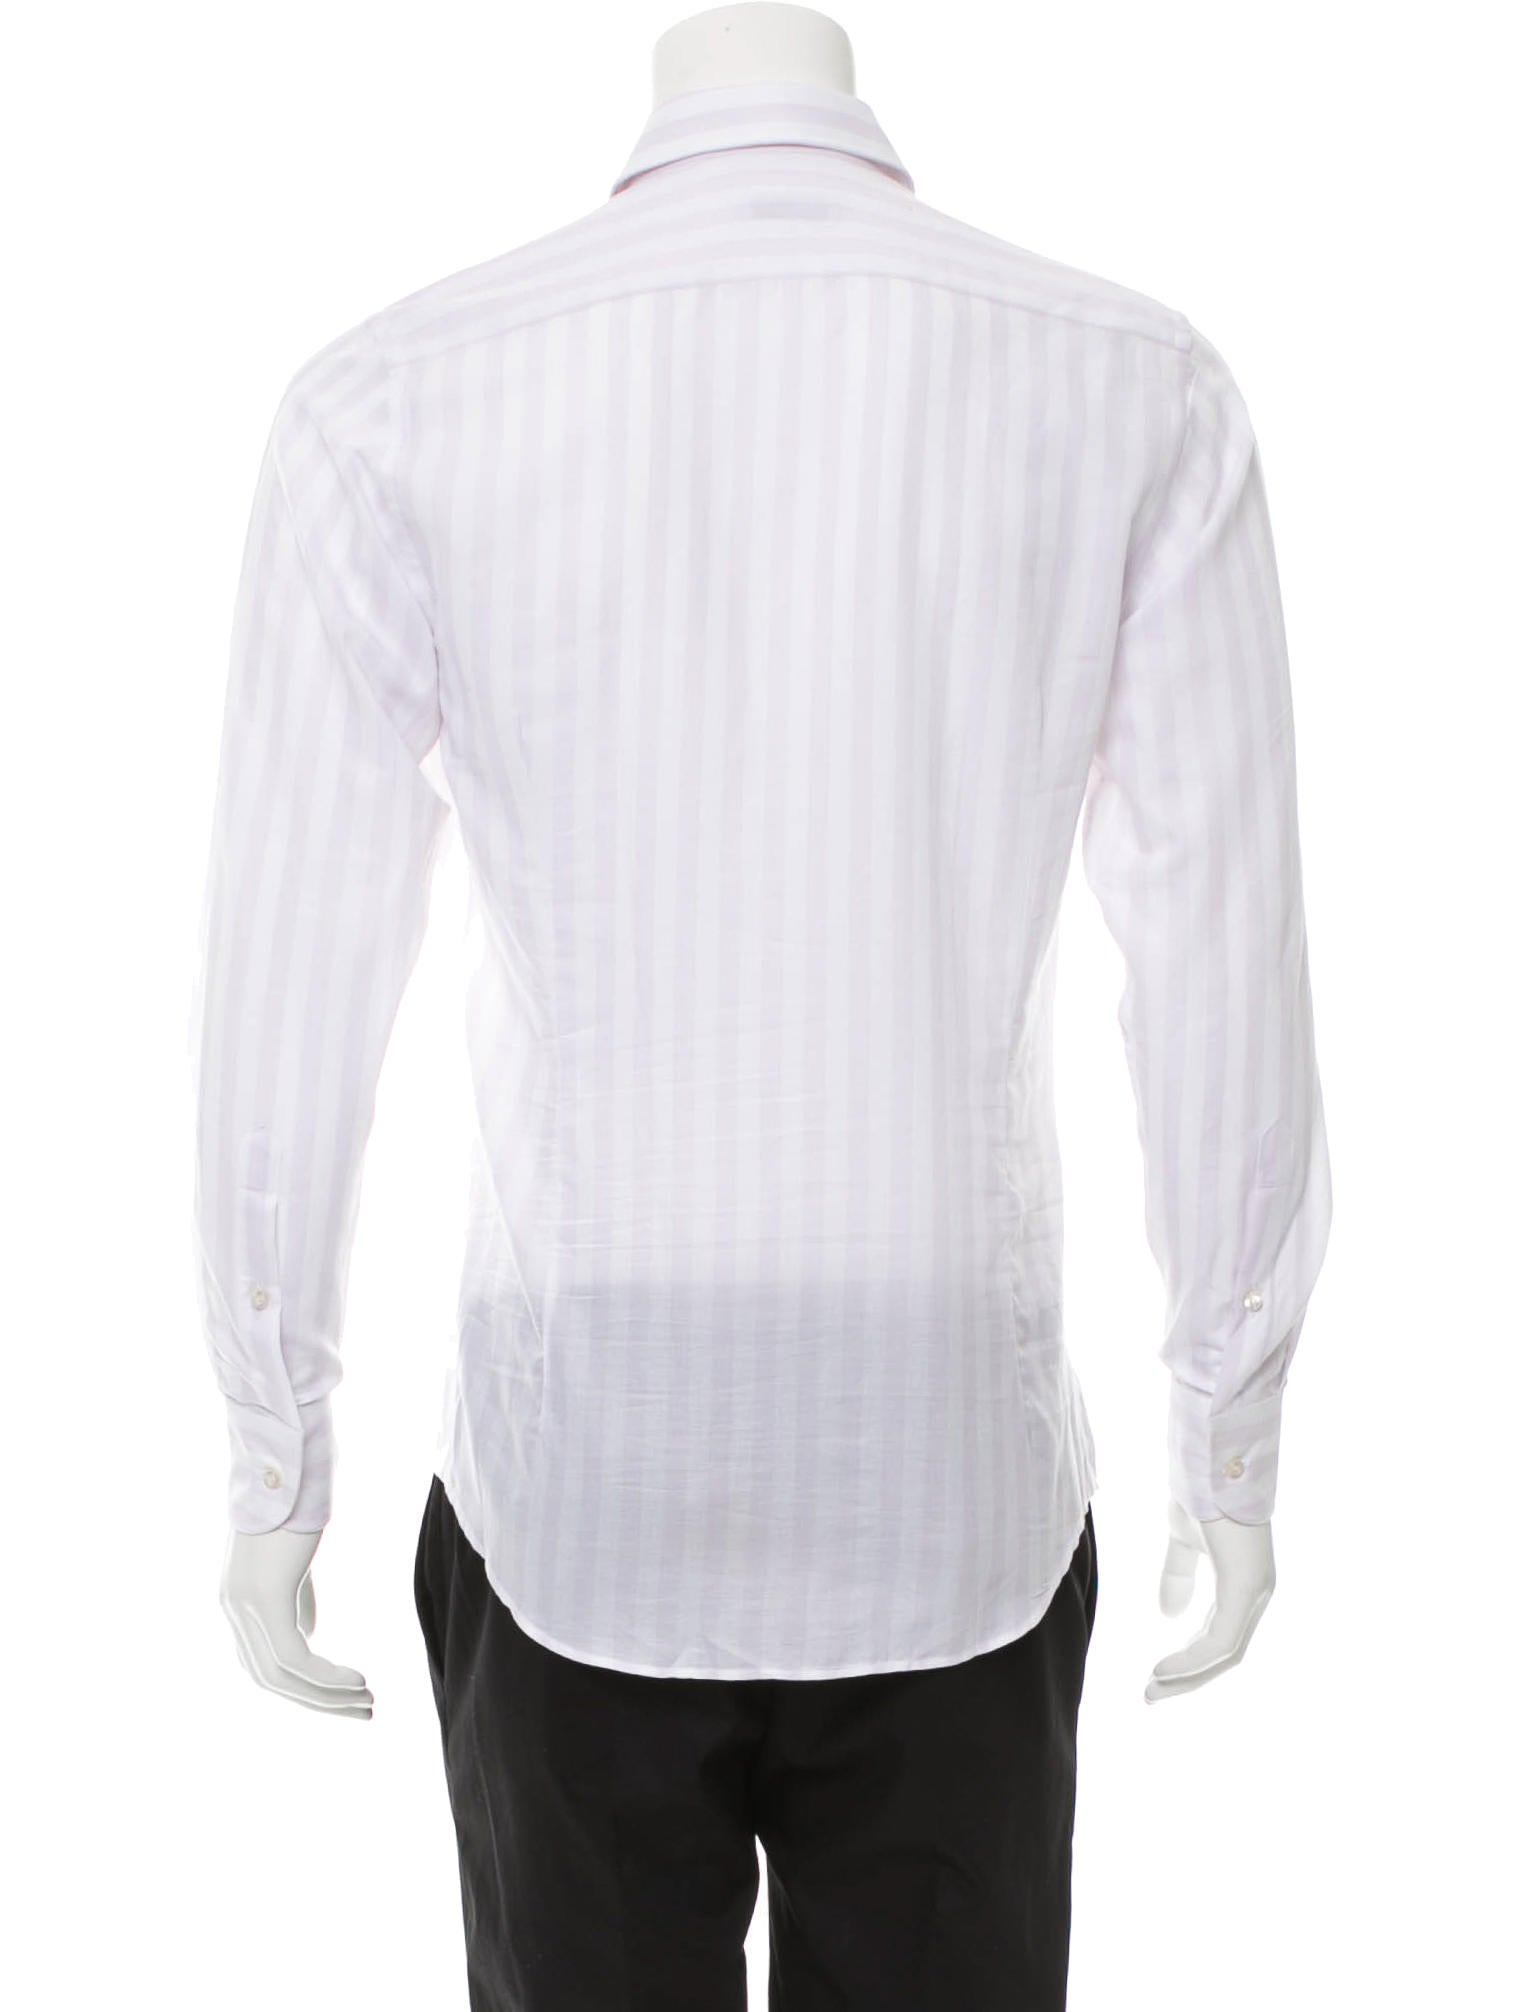 Etro striped button up shirt clothing etr45429 the for Striped button up shirt mens